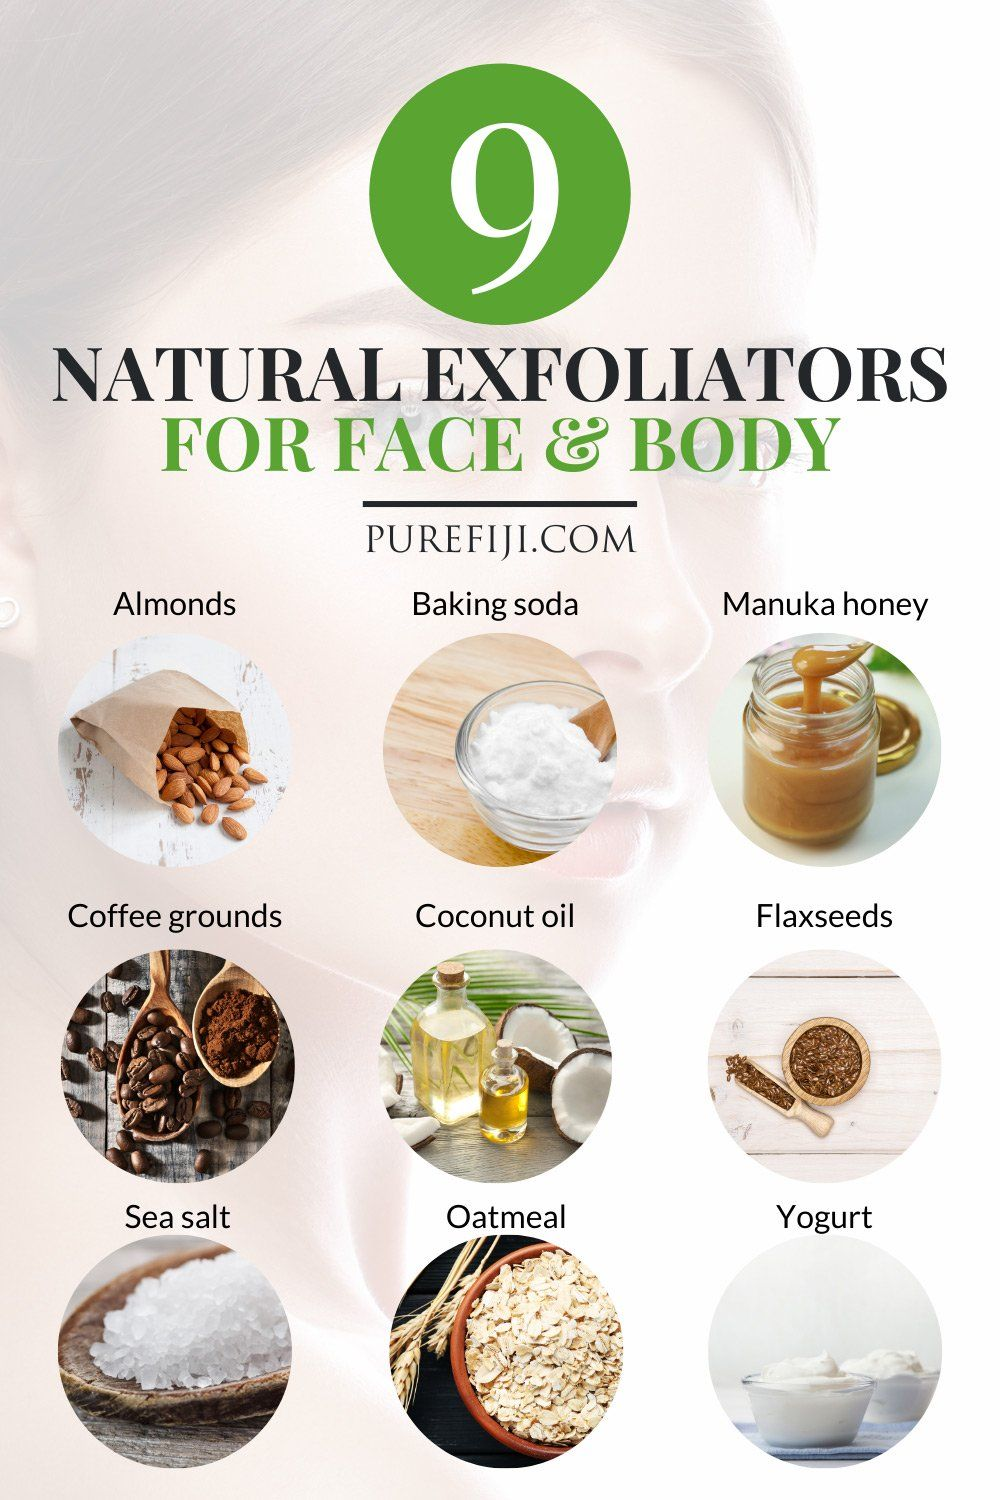 With proper #exfoliation you'll have fewer clogged pores and that means fewer pimples and blackheads. Isn't that what you want? Check 9 natural exfoliators you can easily make from home from the #PureFiiji blog |  Natural Skin Care Products with Virgin Coconut Oil for Natural Beauty #skincaretips #DIYBeauty #exfoliate #exfoliator #naturalexfoliant #exfoliant #facescrub #scrub #radiantskin